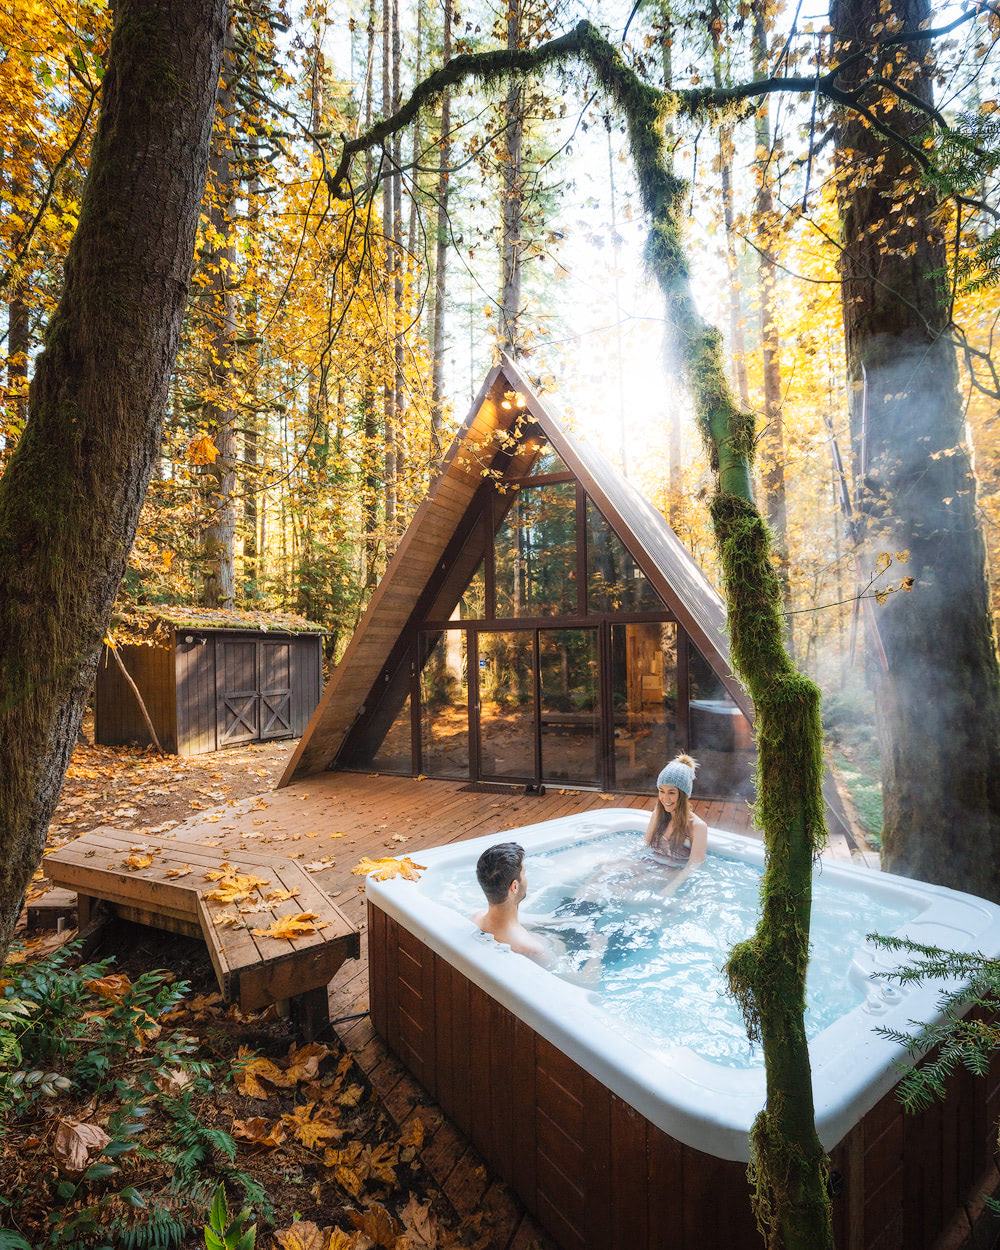 Cozy Cabins to Rent in Washington State - Sky Haus Hot Tub Couple - Renee Roaming